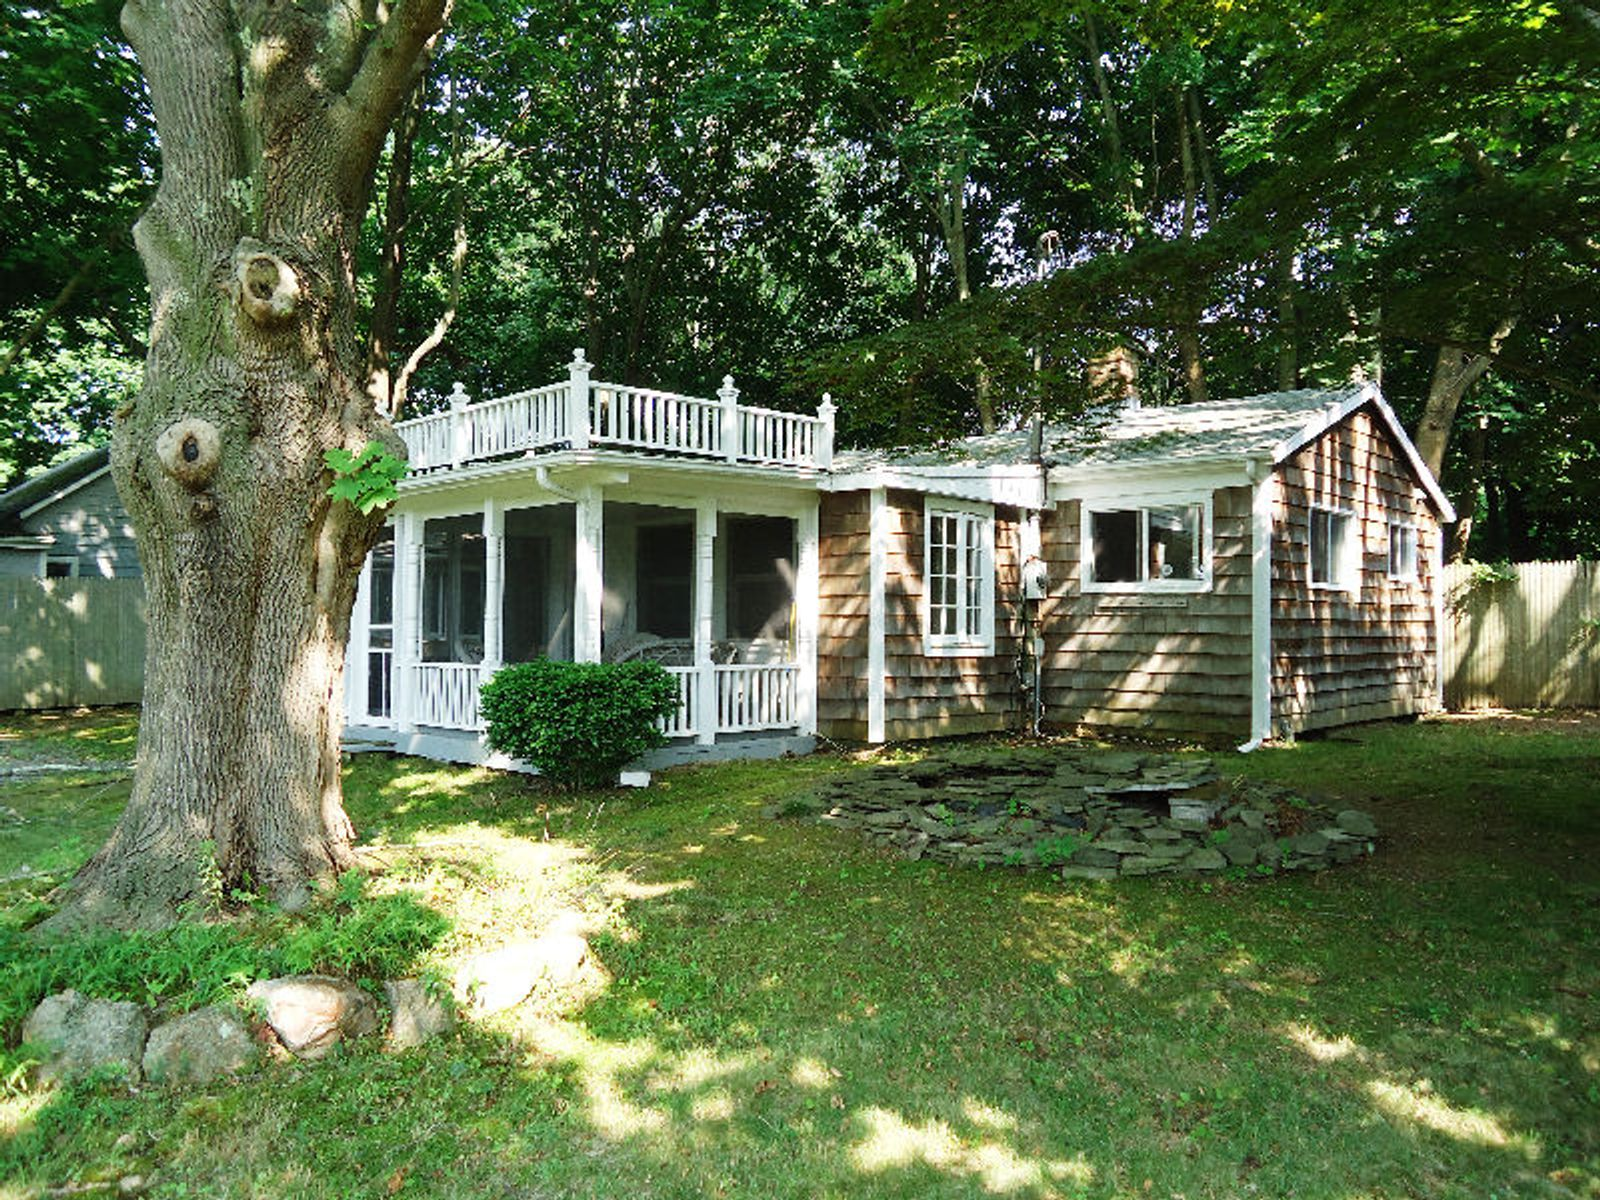 Private Wooded Barkers Island Property, Southampton NY Single Family Home - Hamptons Real Estate